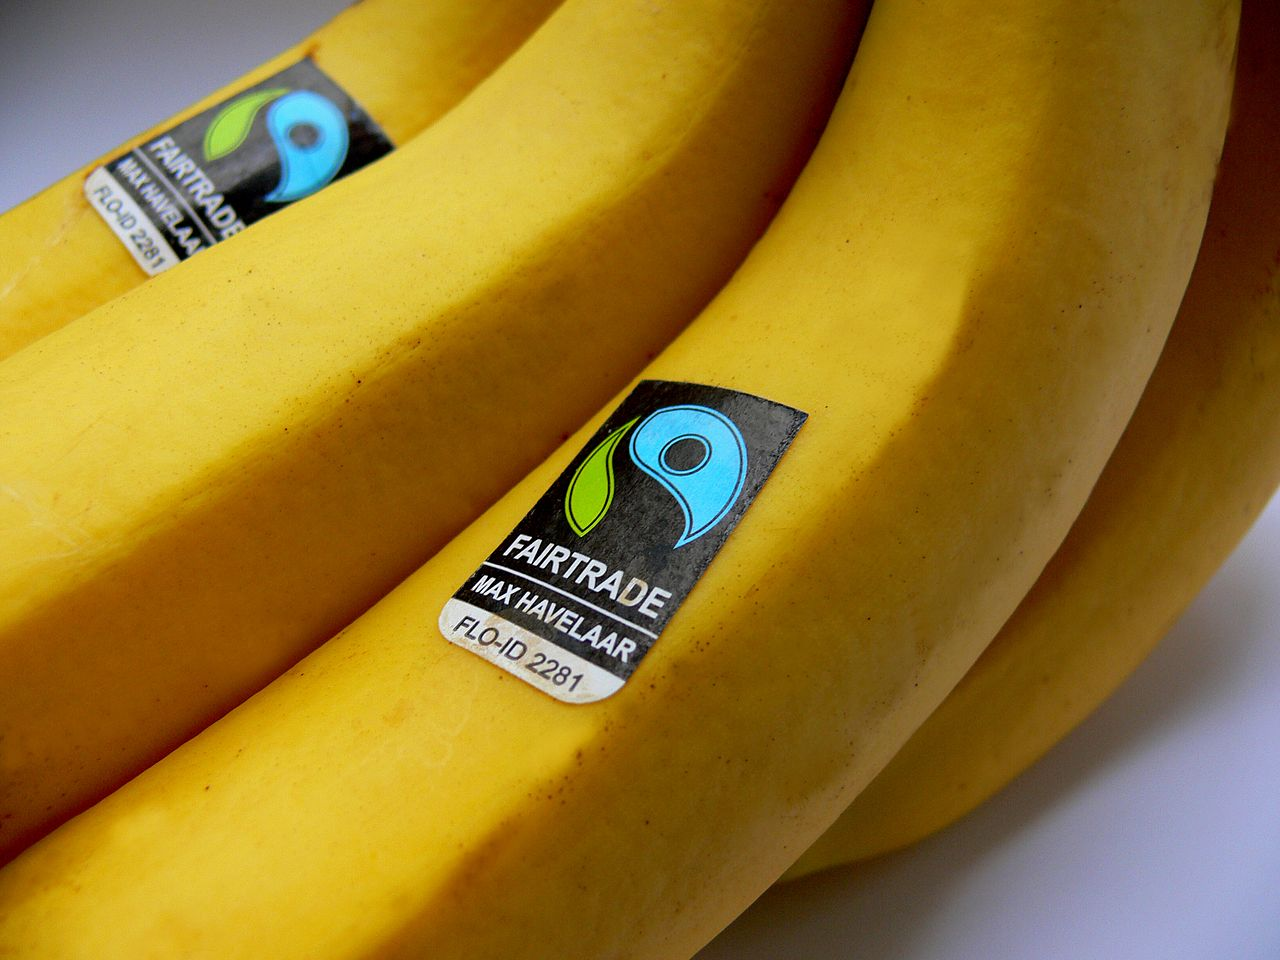 The Other Fair Trade: Why Equitable Bananas Matter | Civil Eats